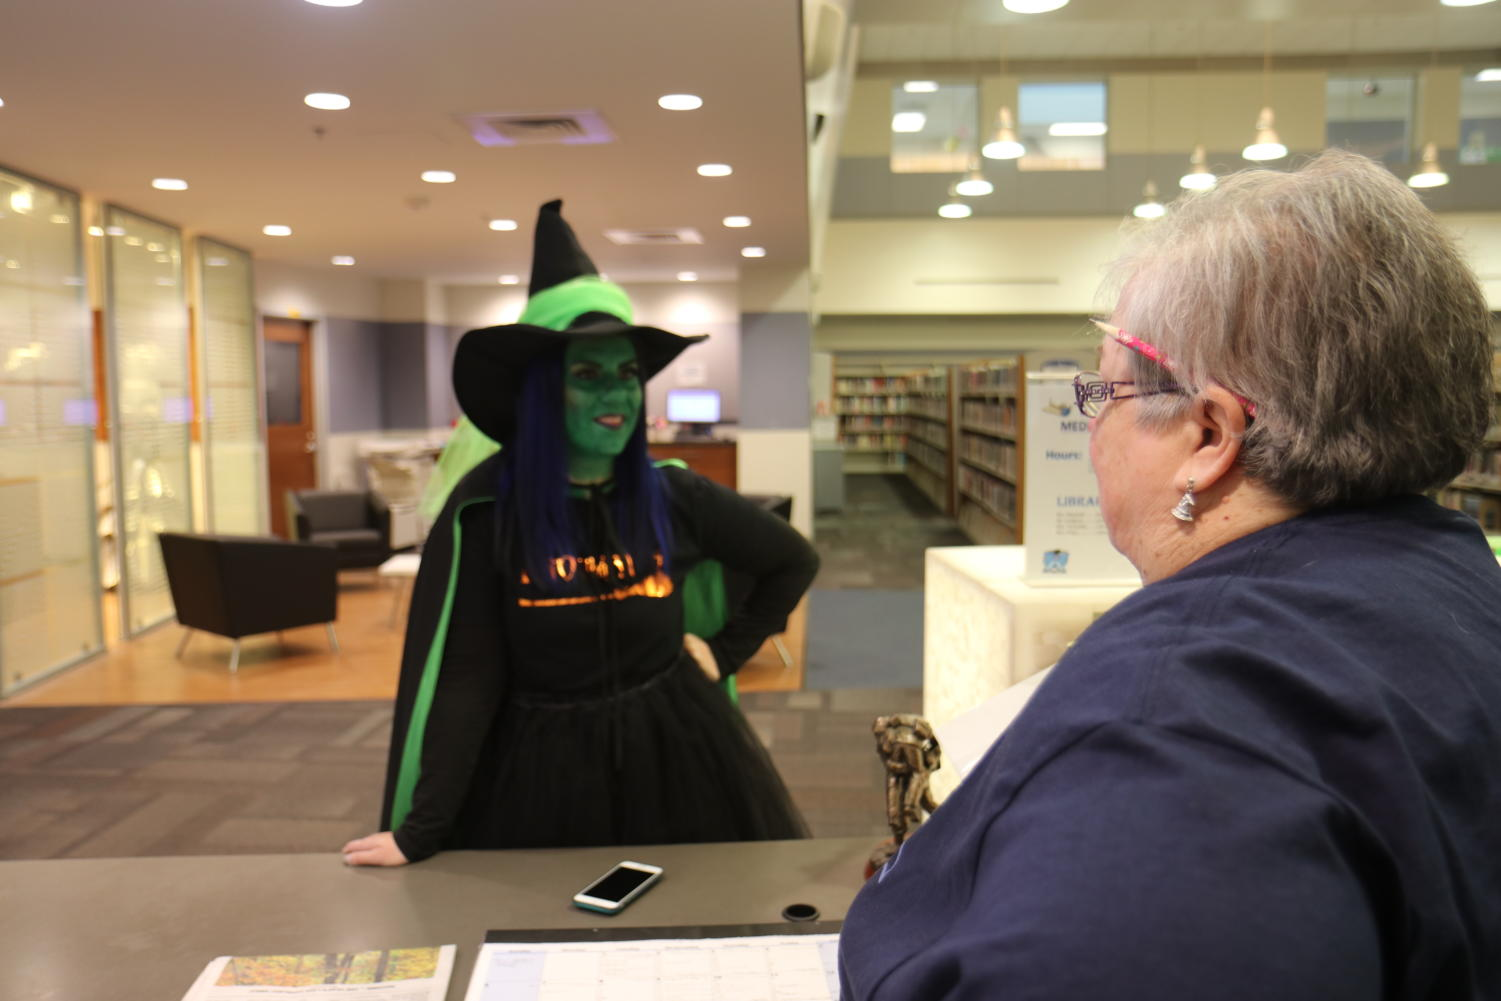 Abbey+Gradle%2C+dressed+as+Elphaba+from+the+Musical+Wicked%2C+says+%E2%80%9CI+chose+my+costume+because+Elphaba+is+my+favorite+character.%E2%80%9D